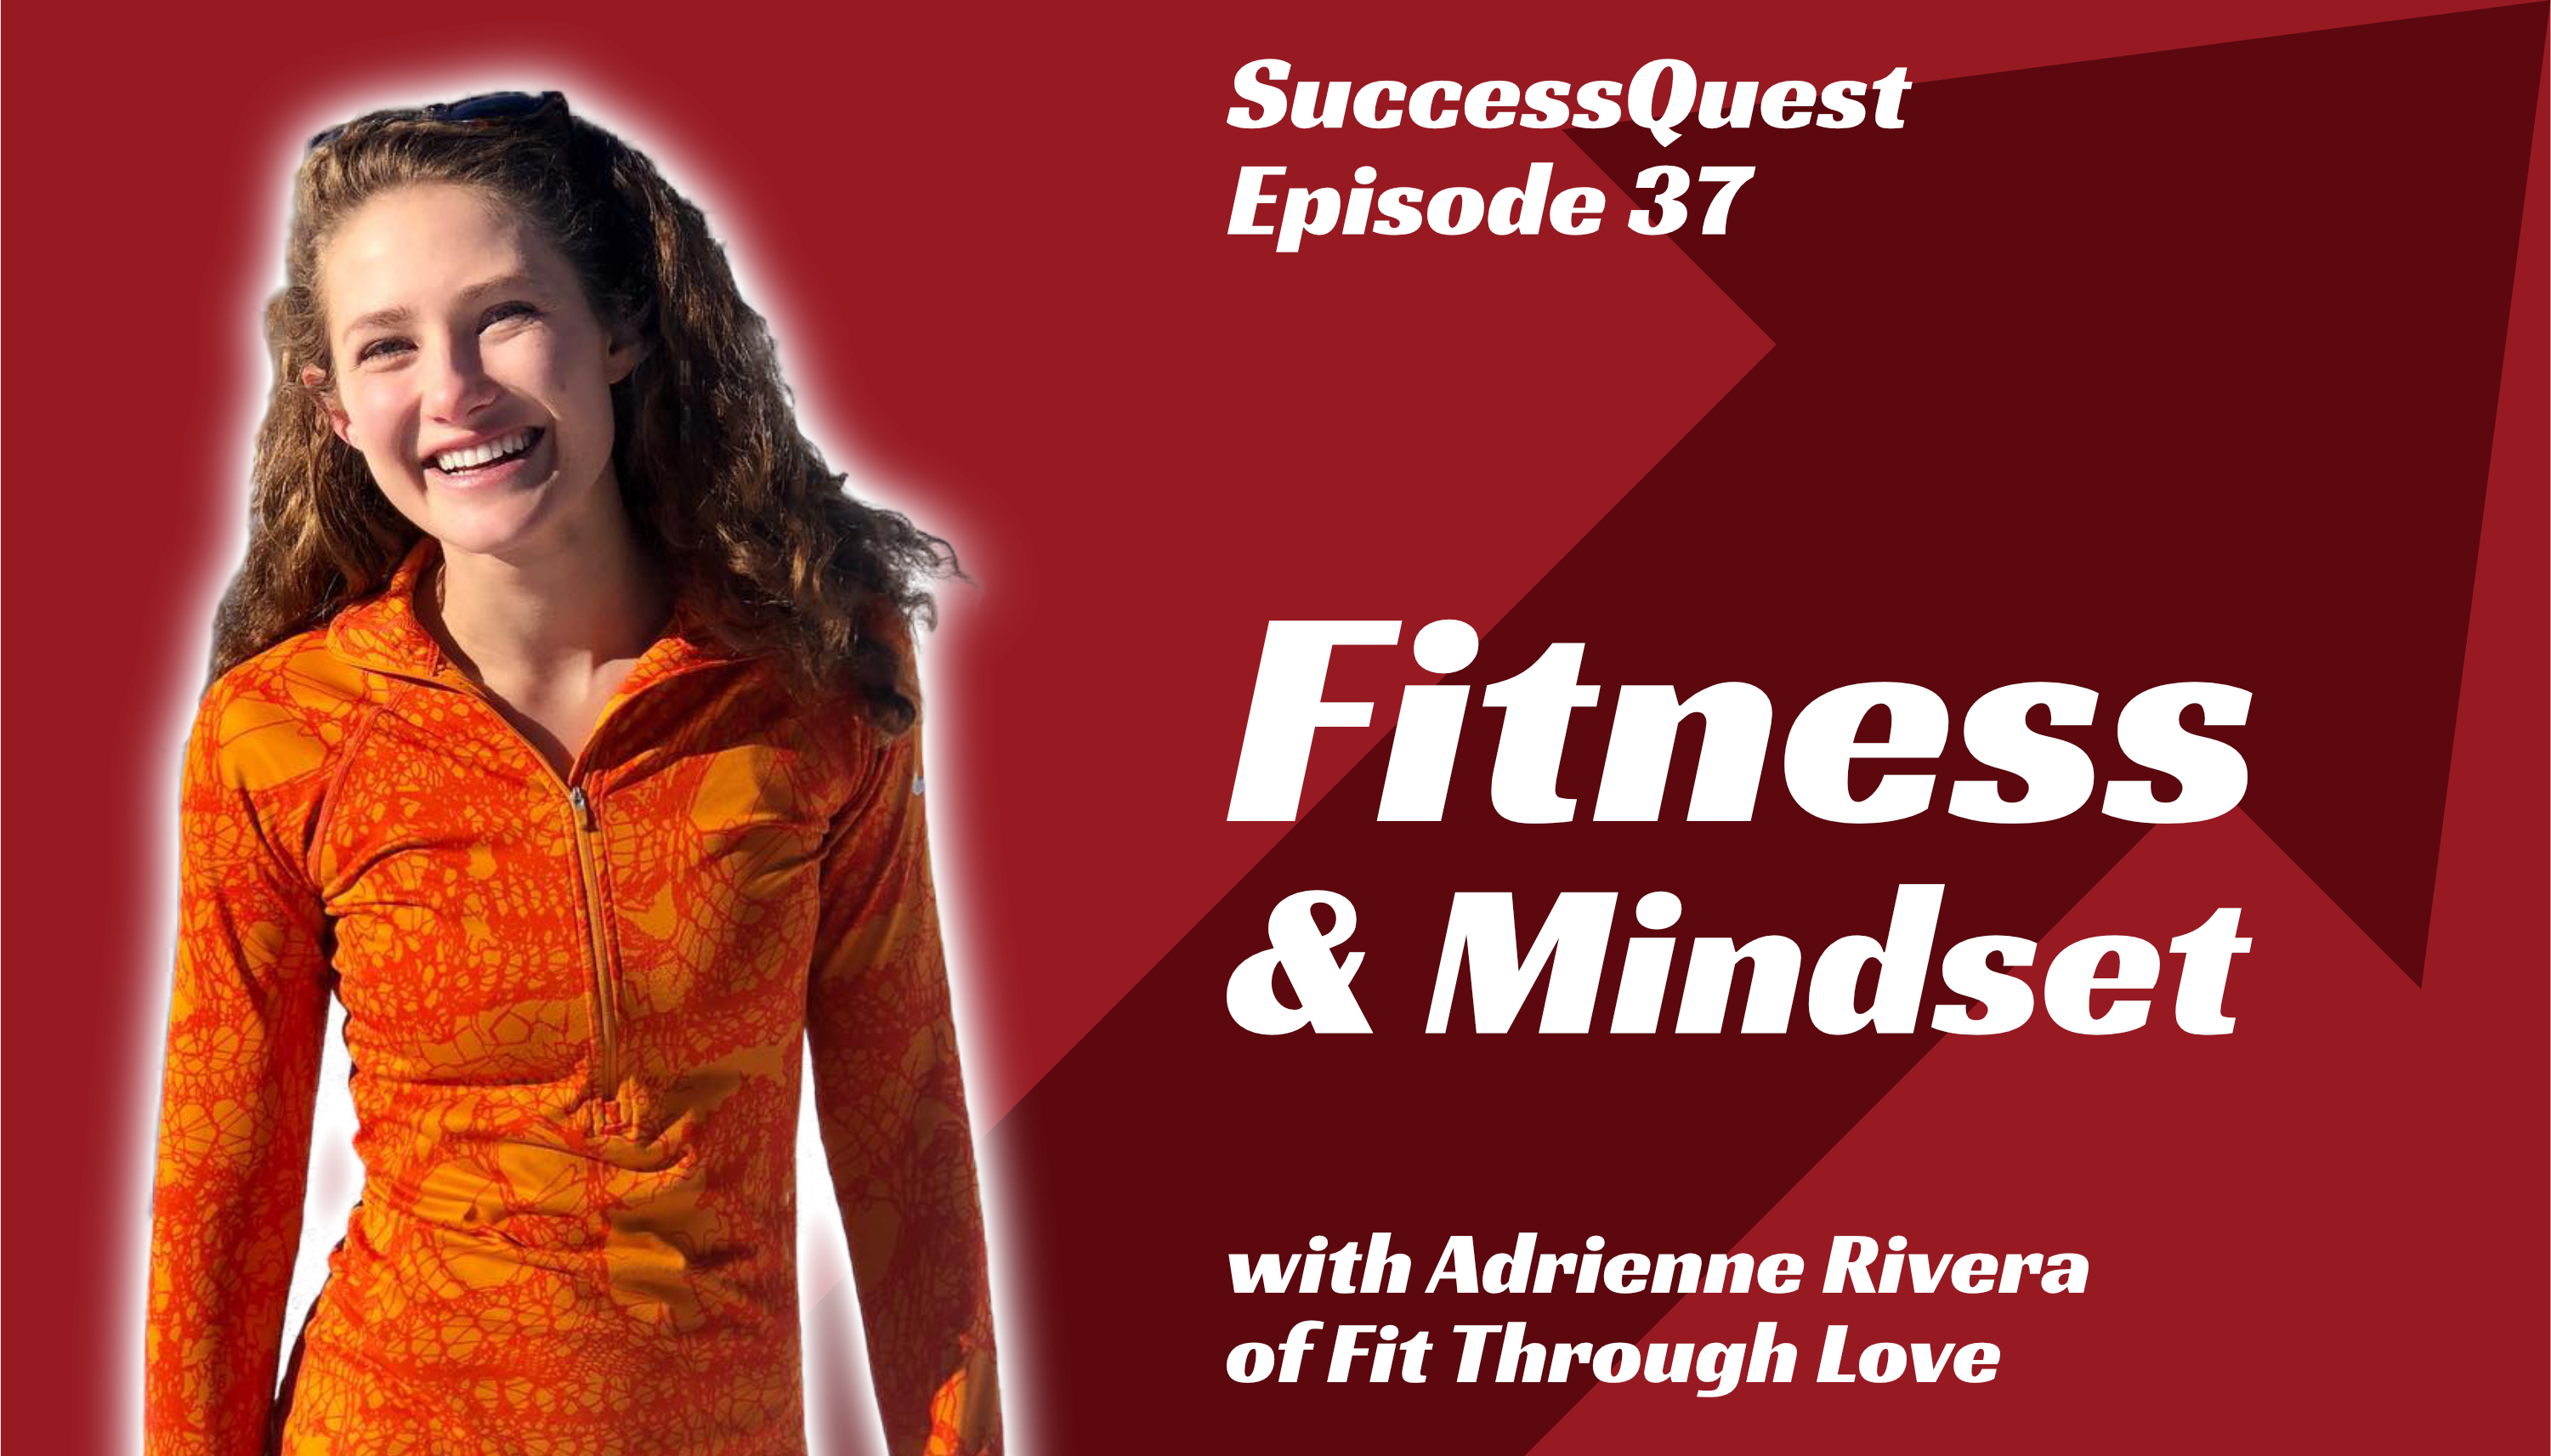 SuccessQuest Fitness and Mindset Adrienne Rivera